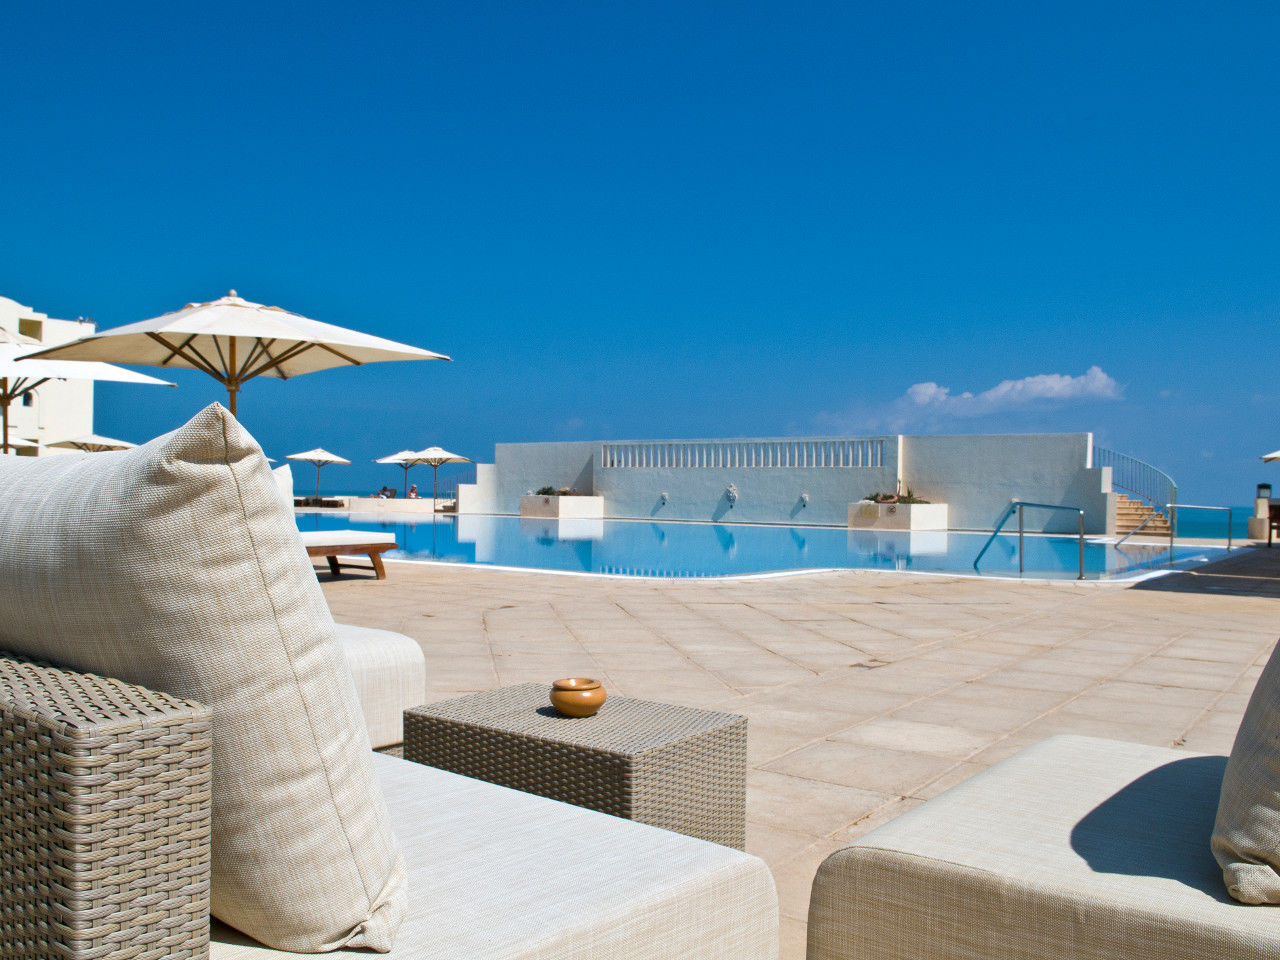 Hôtel Sensimar Thalasso Ulysse Palace 5* Luxe - Adult Only